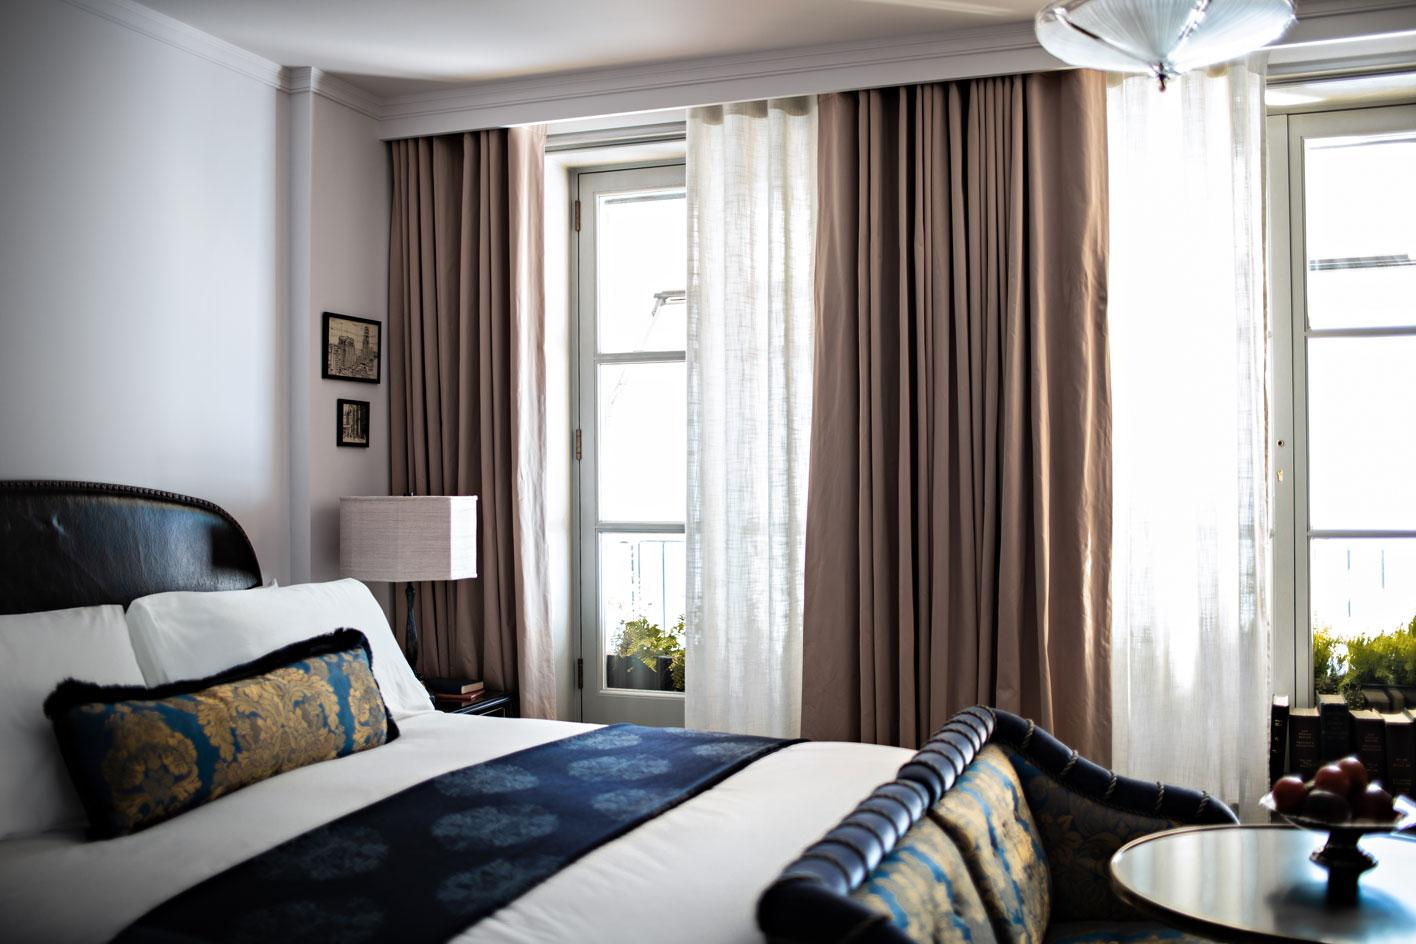 NoMad hotel London guestroom